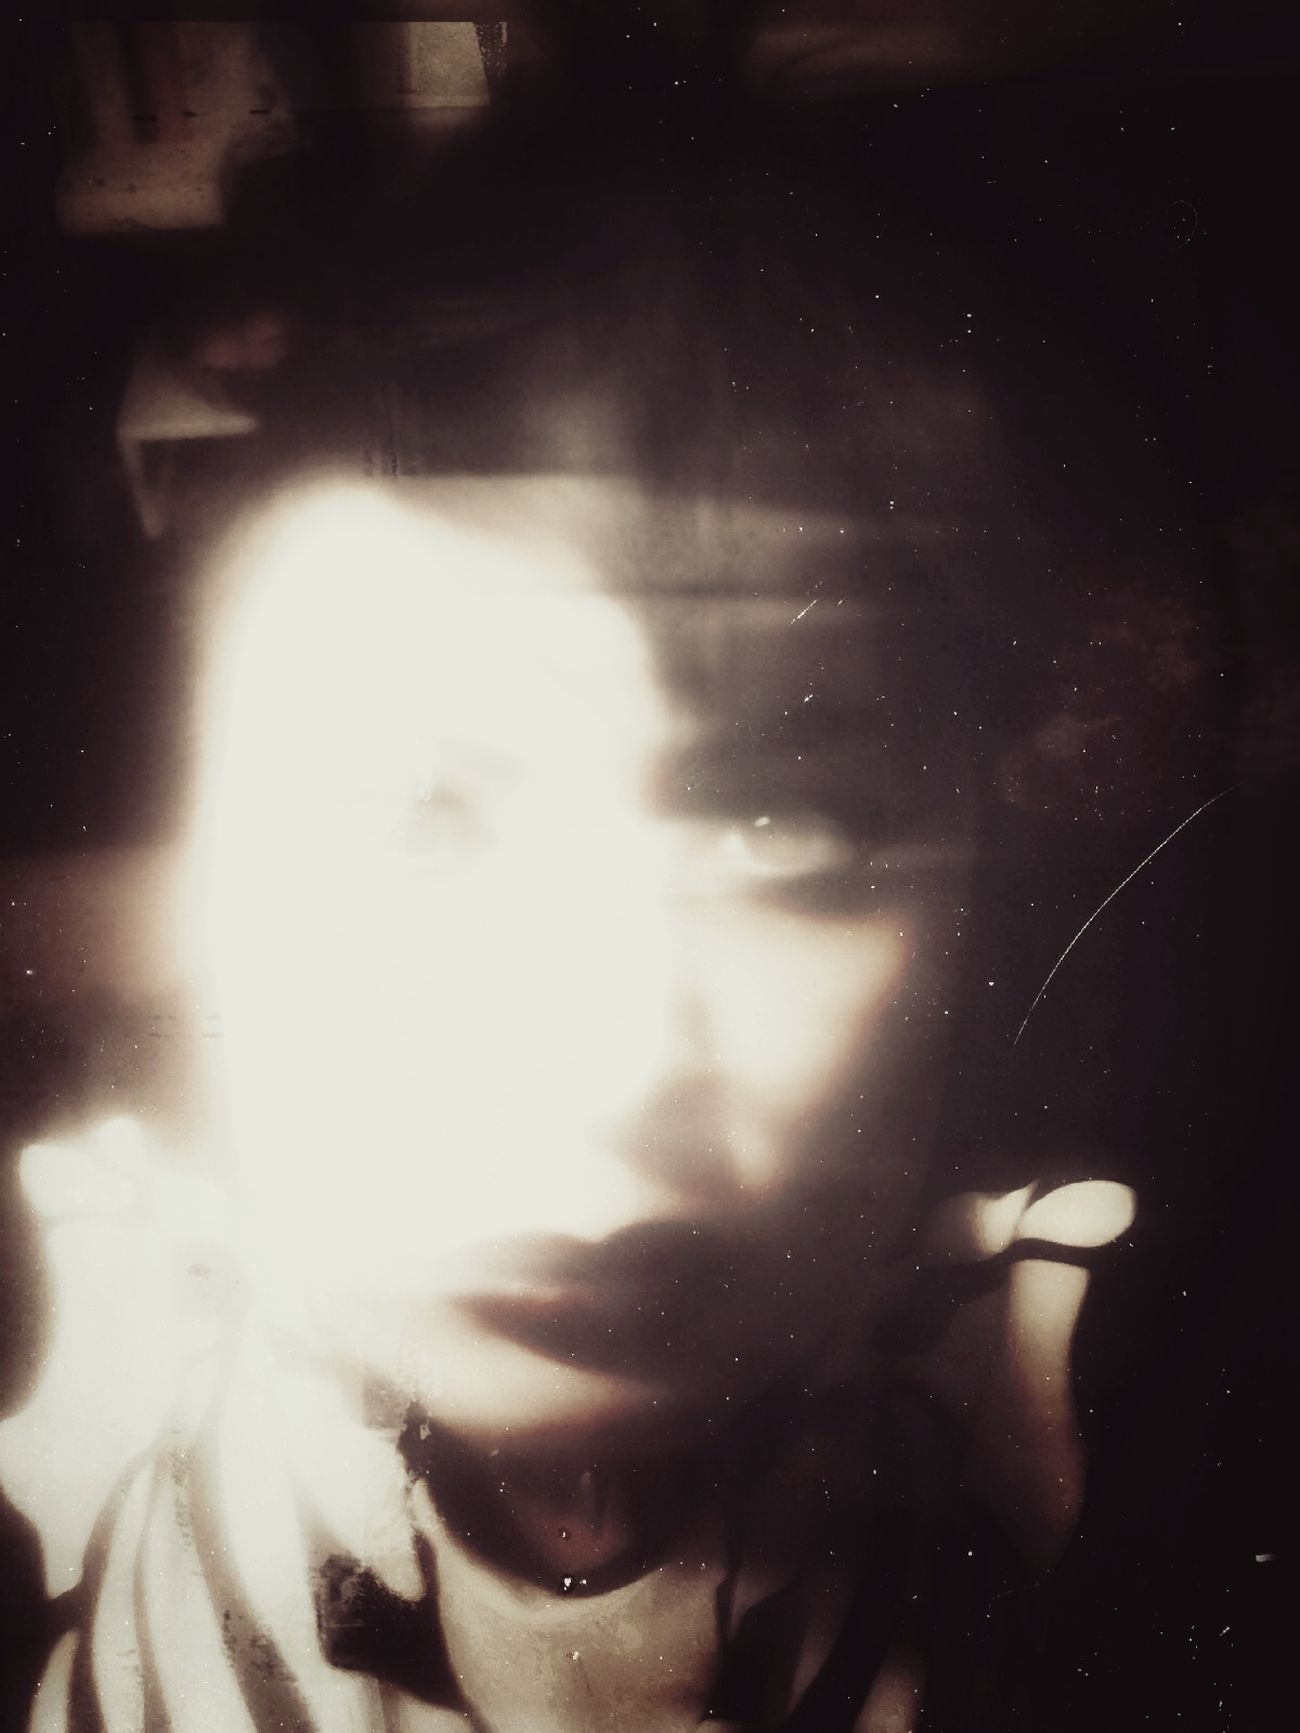 Buster Keaton Darkness Selfportrait STAY HUMAN 💯 NEM Self Human Face Selportrait_tuesday_nonchallenge That's Me Dark Art OpenEdit Open Edit Dark Edit Dark Portrait Darkclown Darkart Self Portrait MemyselfandI Sweet Dreams Vampires And Werewolves